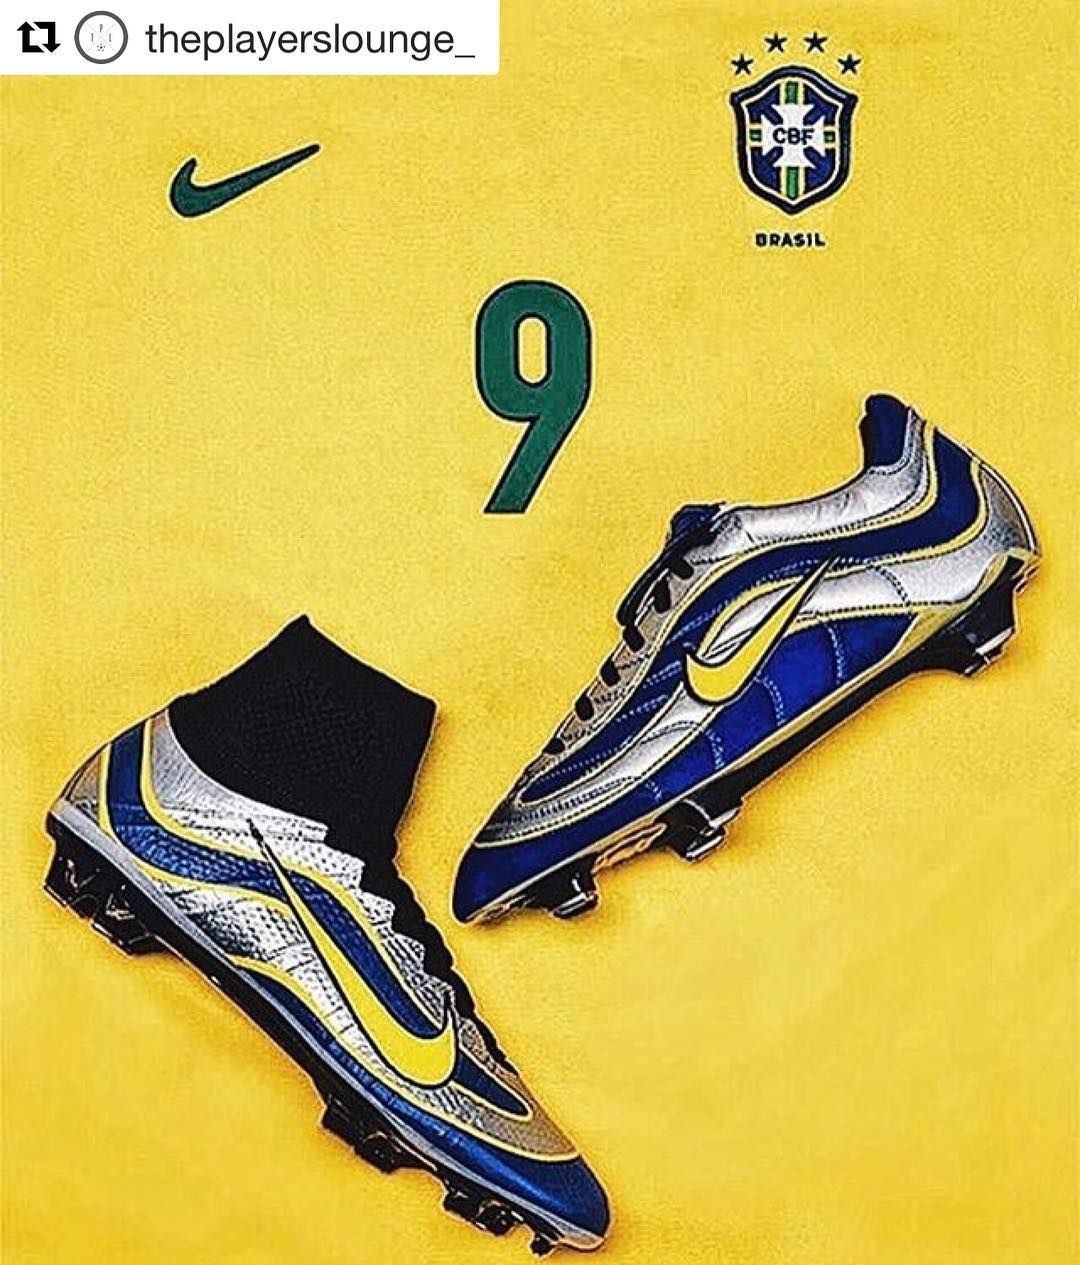 new product 6e04e c211a Best boot ever  theplayerslounge  R9.  ronaldo .  legend  icon  ronaldo   R9 footballshirtcollective